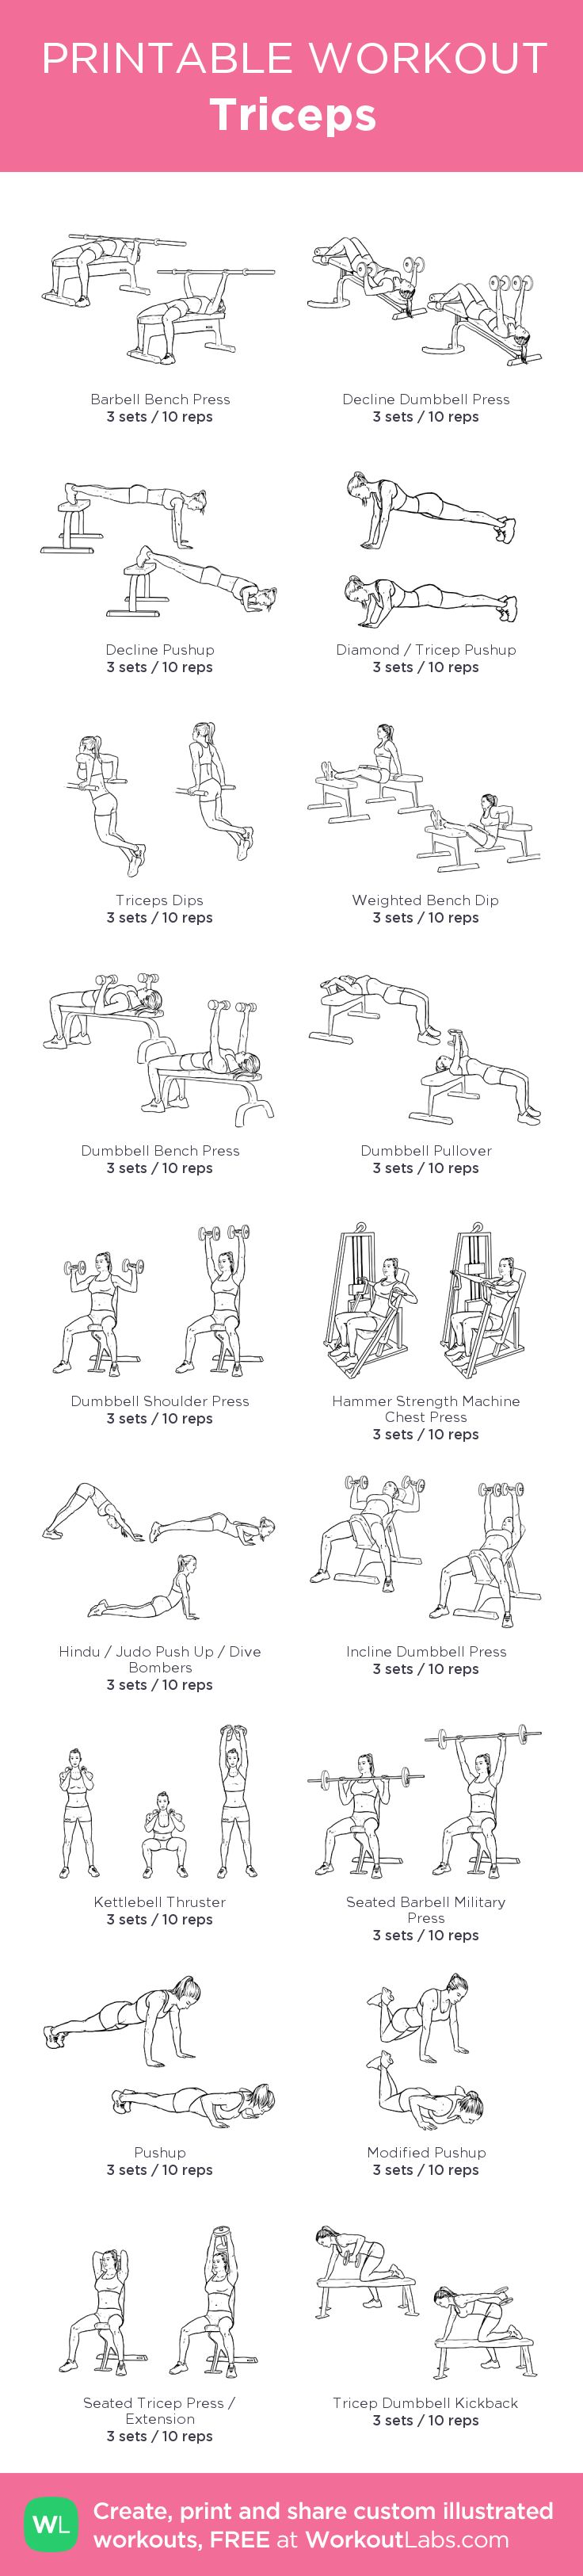 Triceps : my custom printable workout by @WorkoutLabs #workoutlabs #customworkout